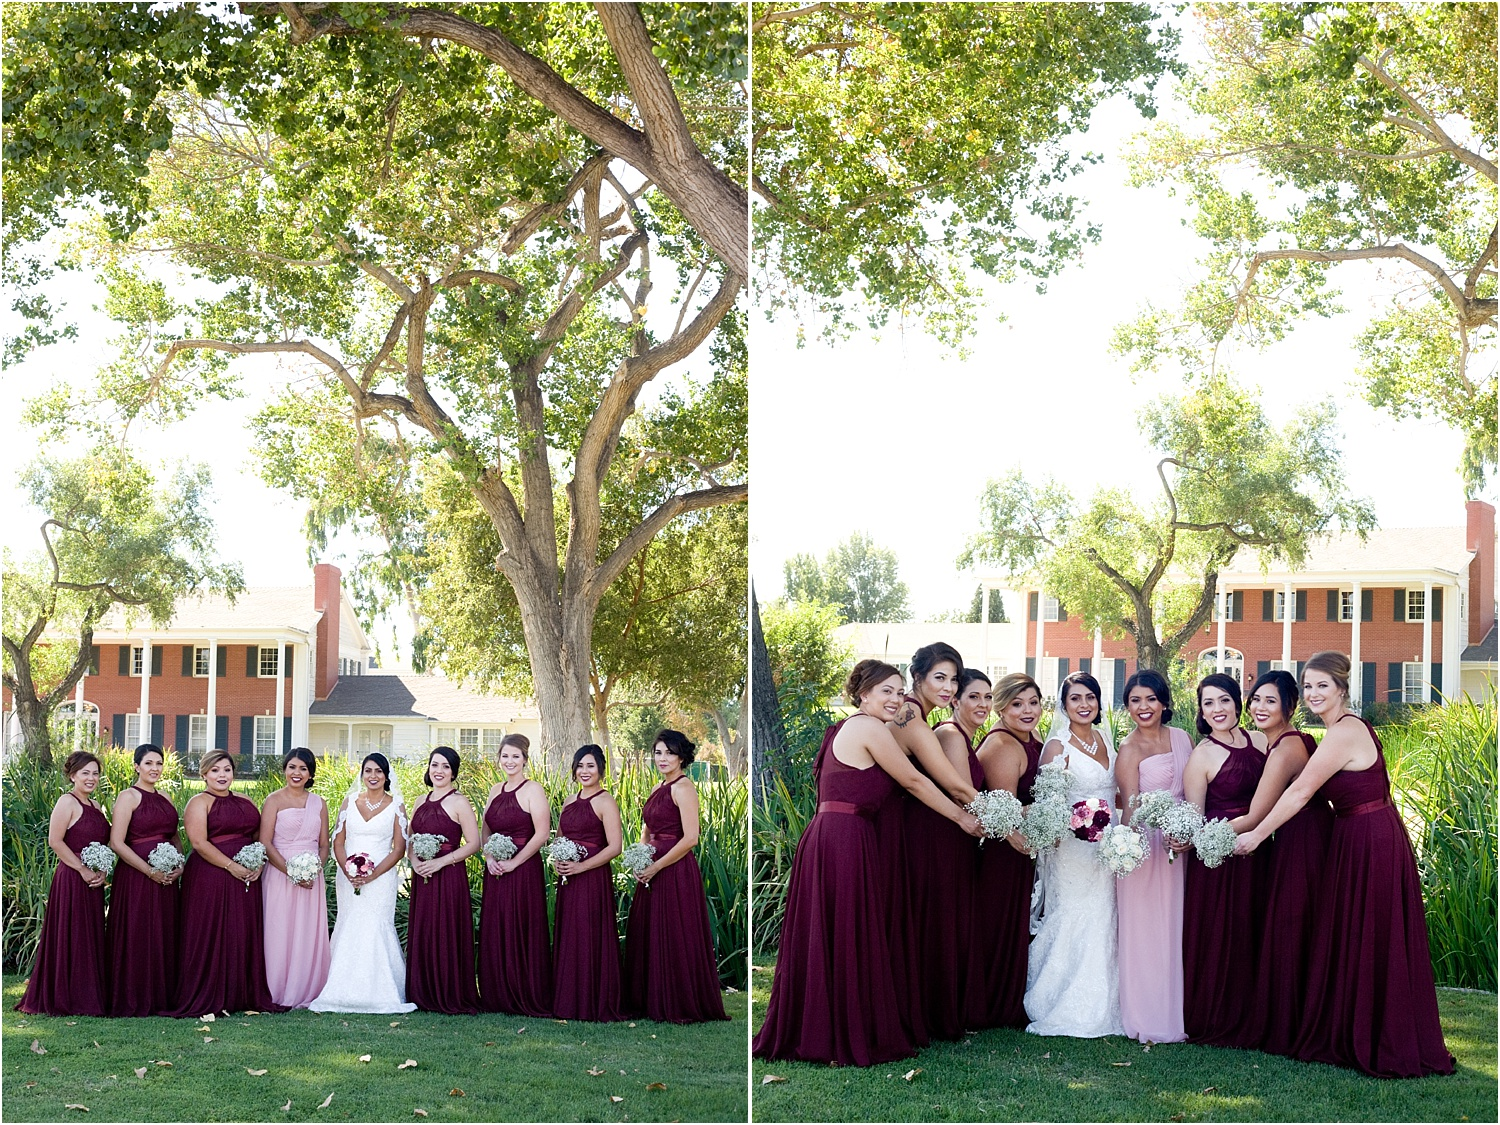 How to photograph family and bridal party portraits quickly at weddings 17